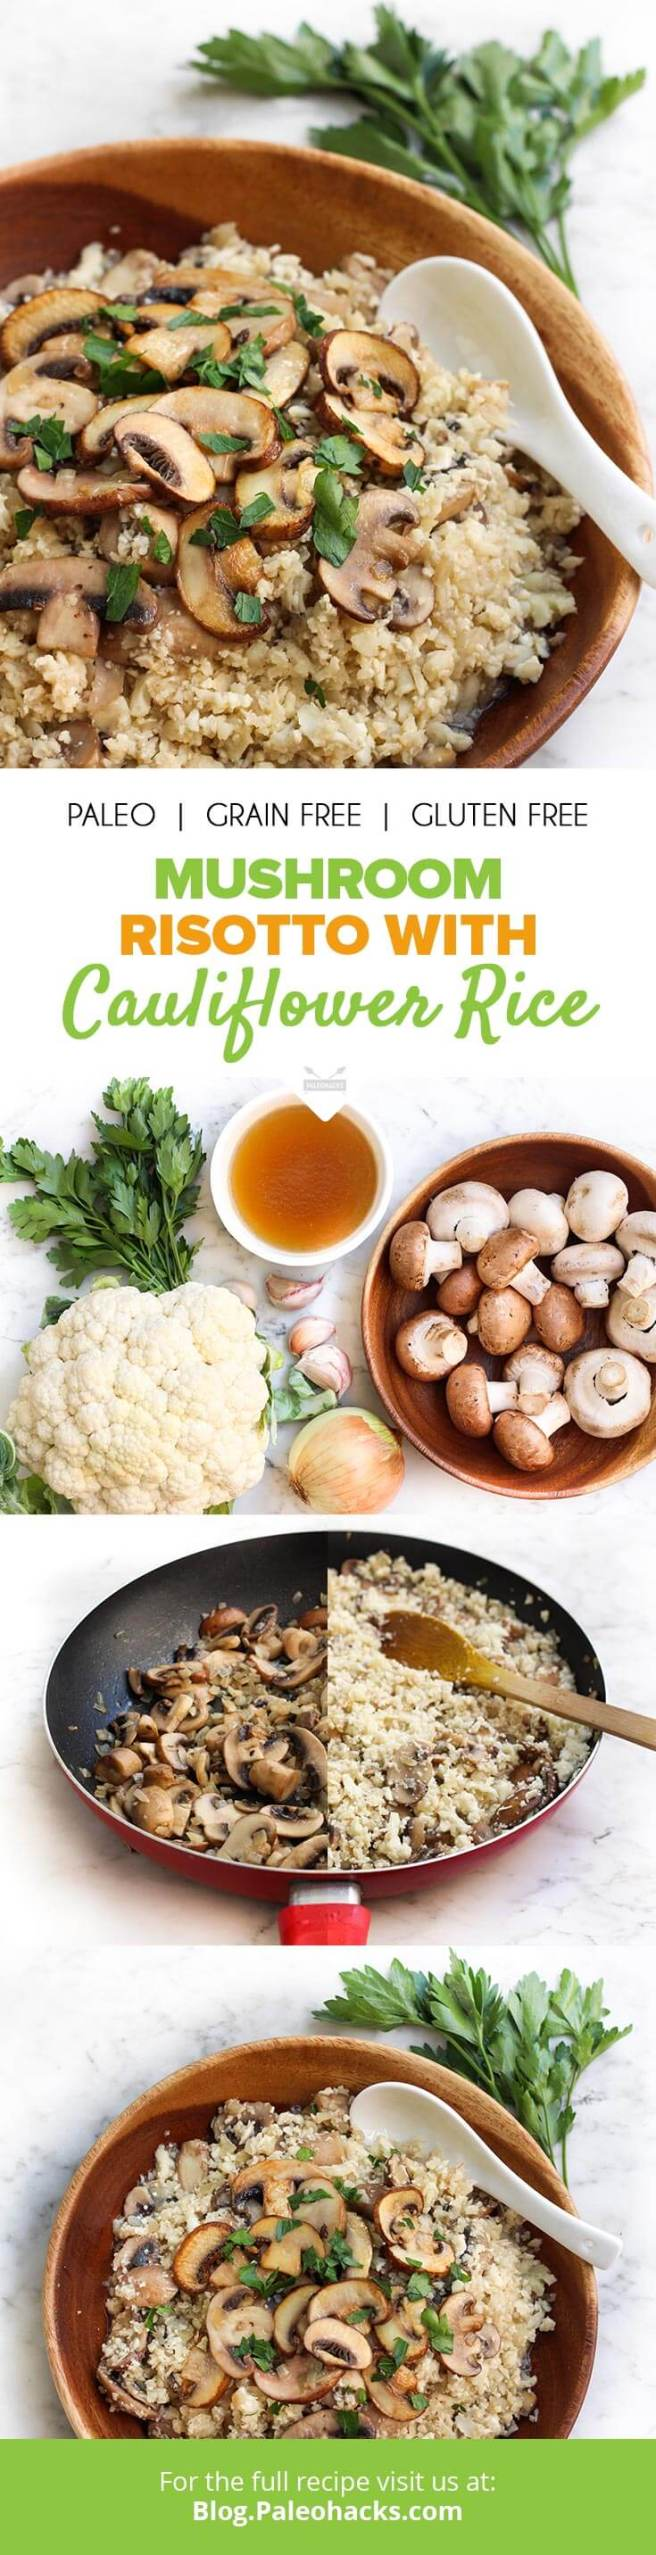 PIN-Mushroom-Risotto-with-Cauliflower-Rice